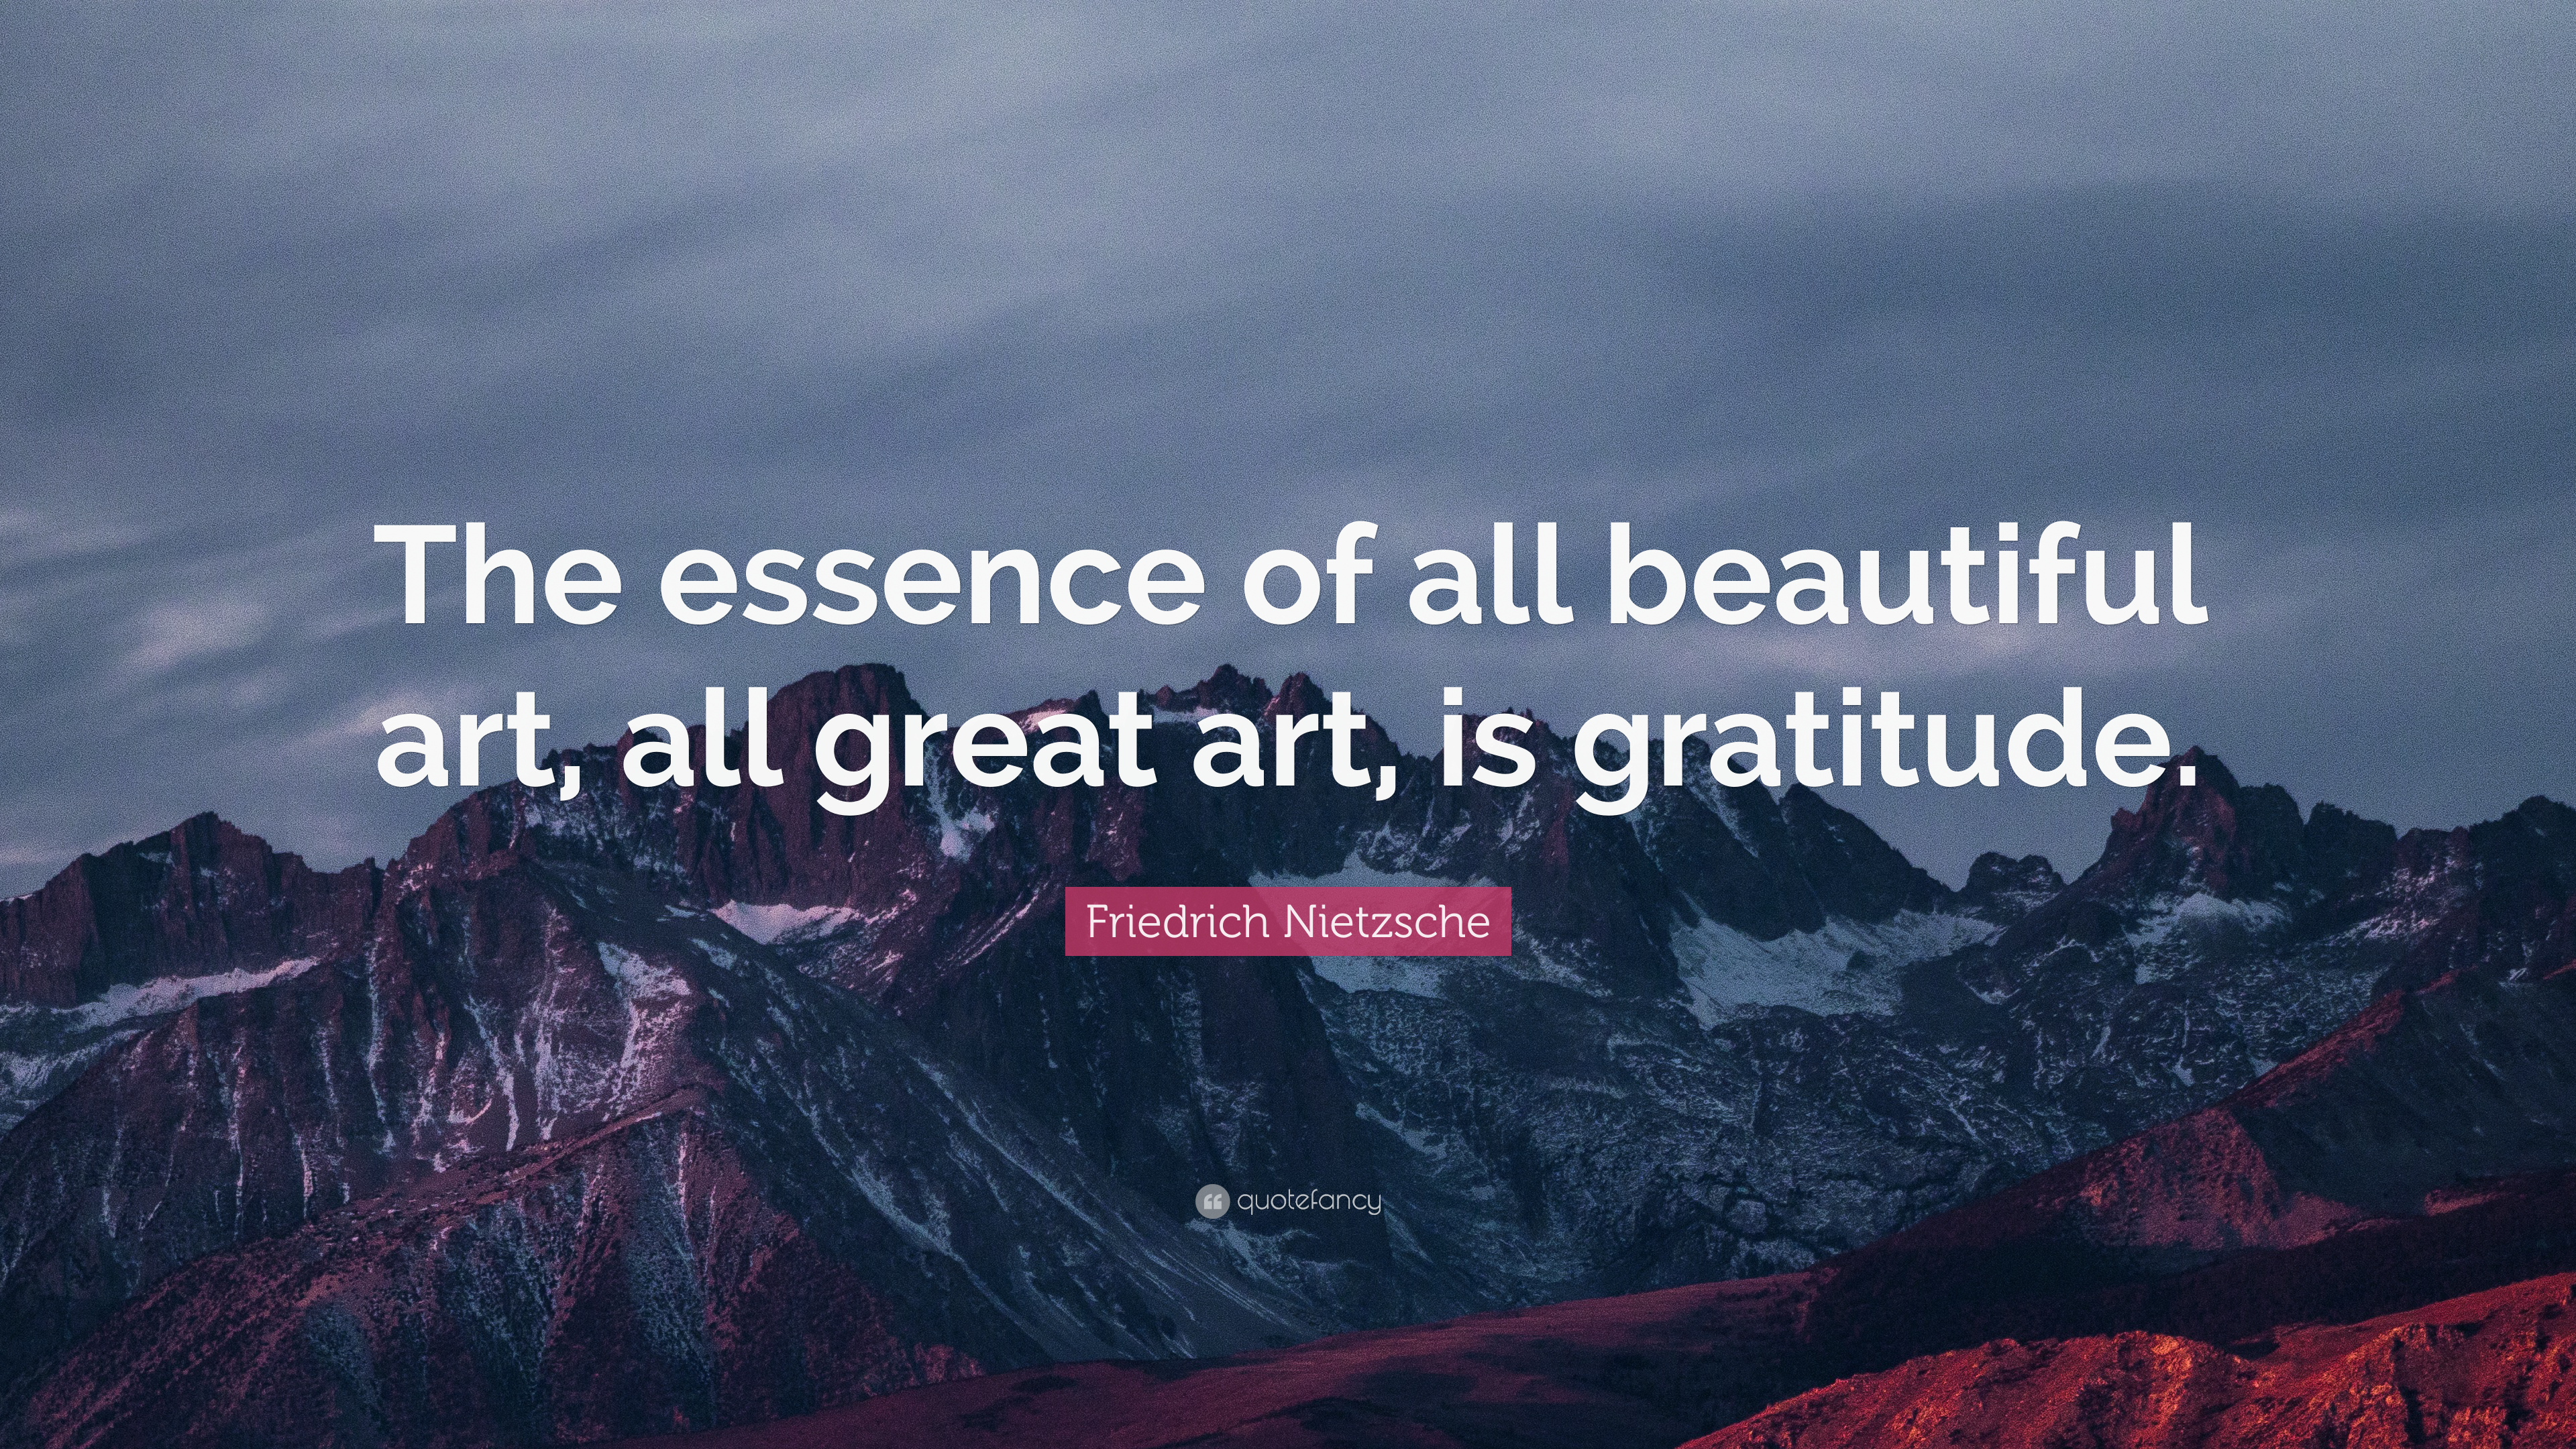 Friedrich Nietzsche Quote: U201cThe Essence Of All Beautiful Art, All Great Art,